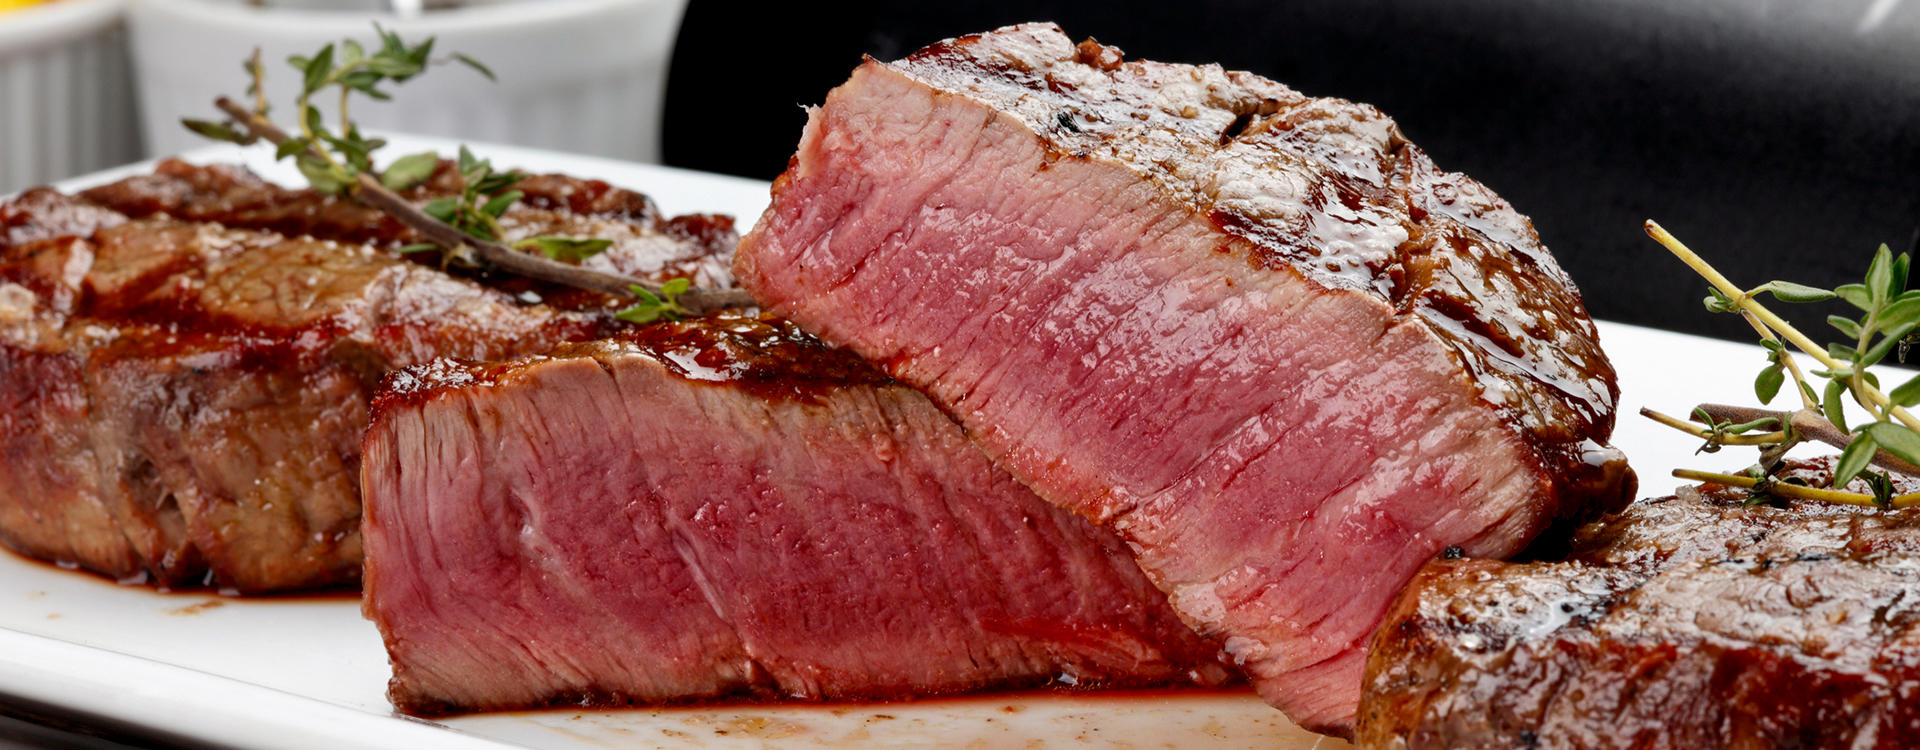 OM-San-Francisco_Bob's-Steak-&-Chop-House-Dinner